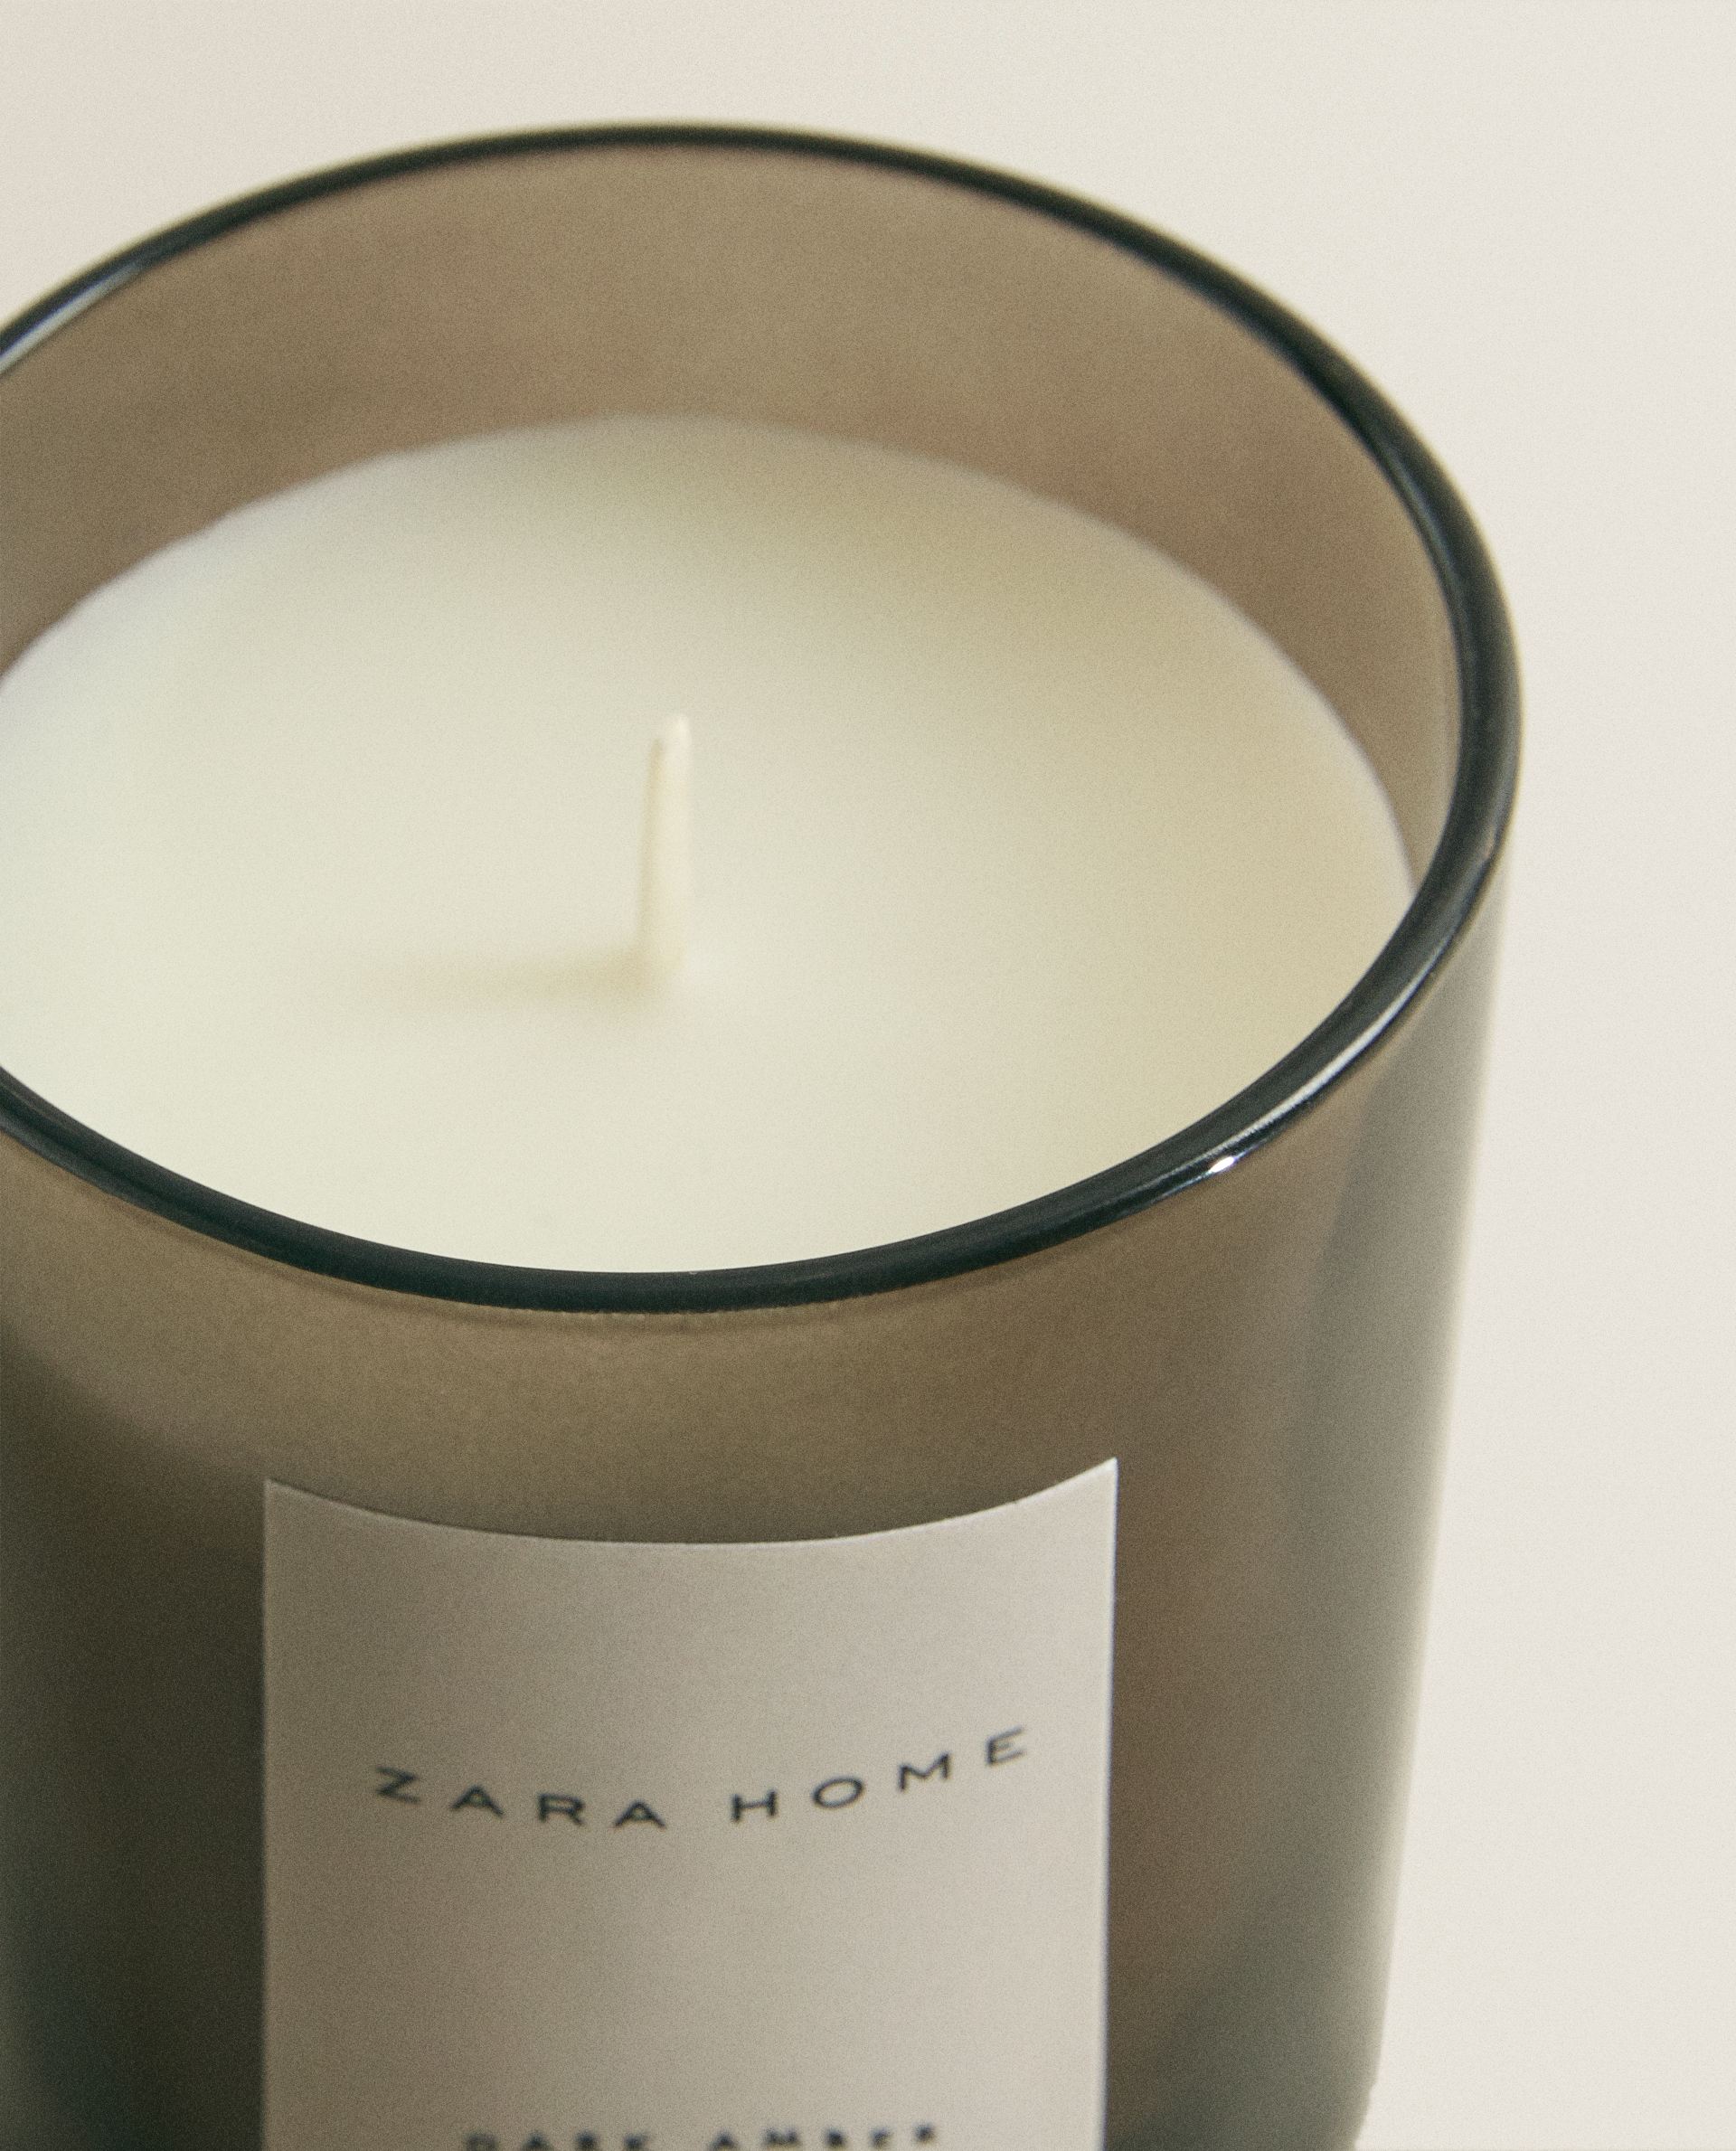 DARK AMBER SCENTED CANDLE